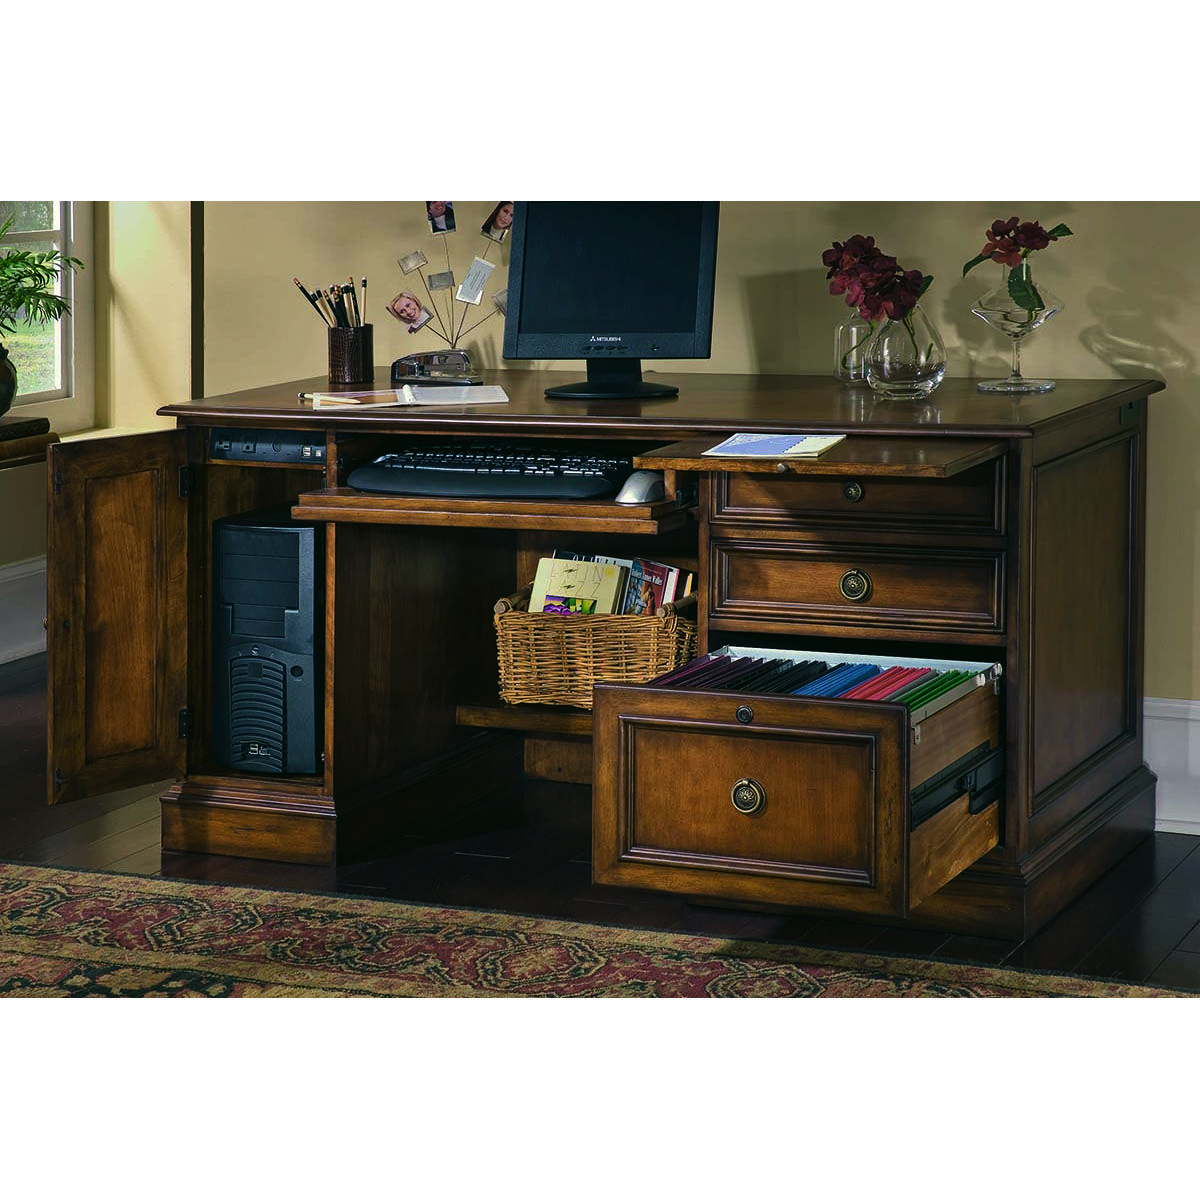 Excellent Hooker Furniture Brookhaven Drawer Desk 281 10 401 Hooker Andrewgaddart Wooden Chair Designs For Living Room Andrewgaddartcom